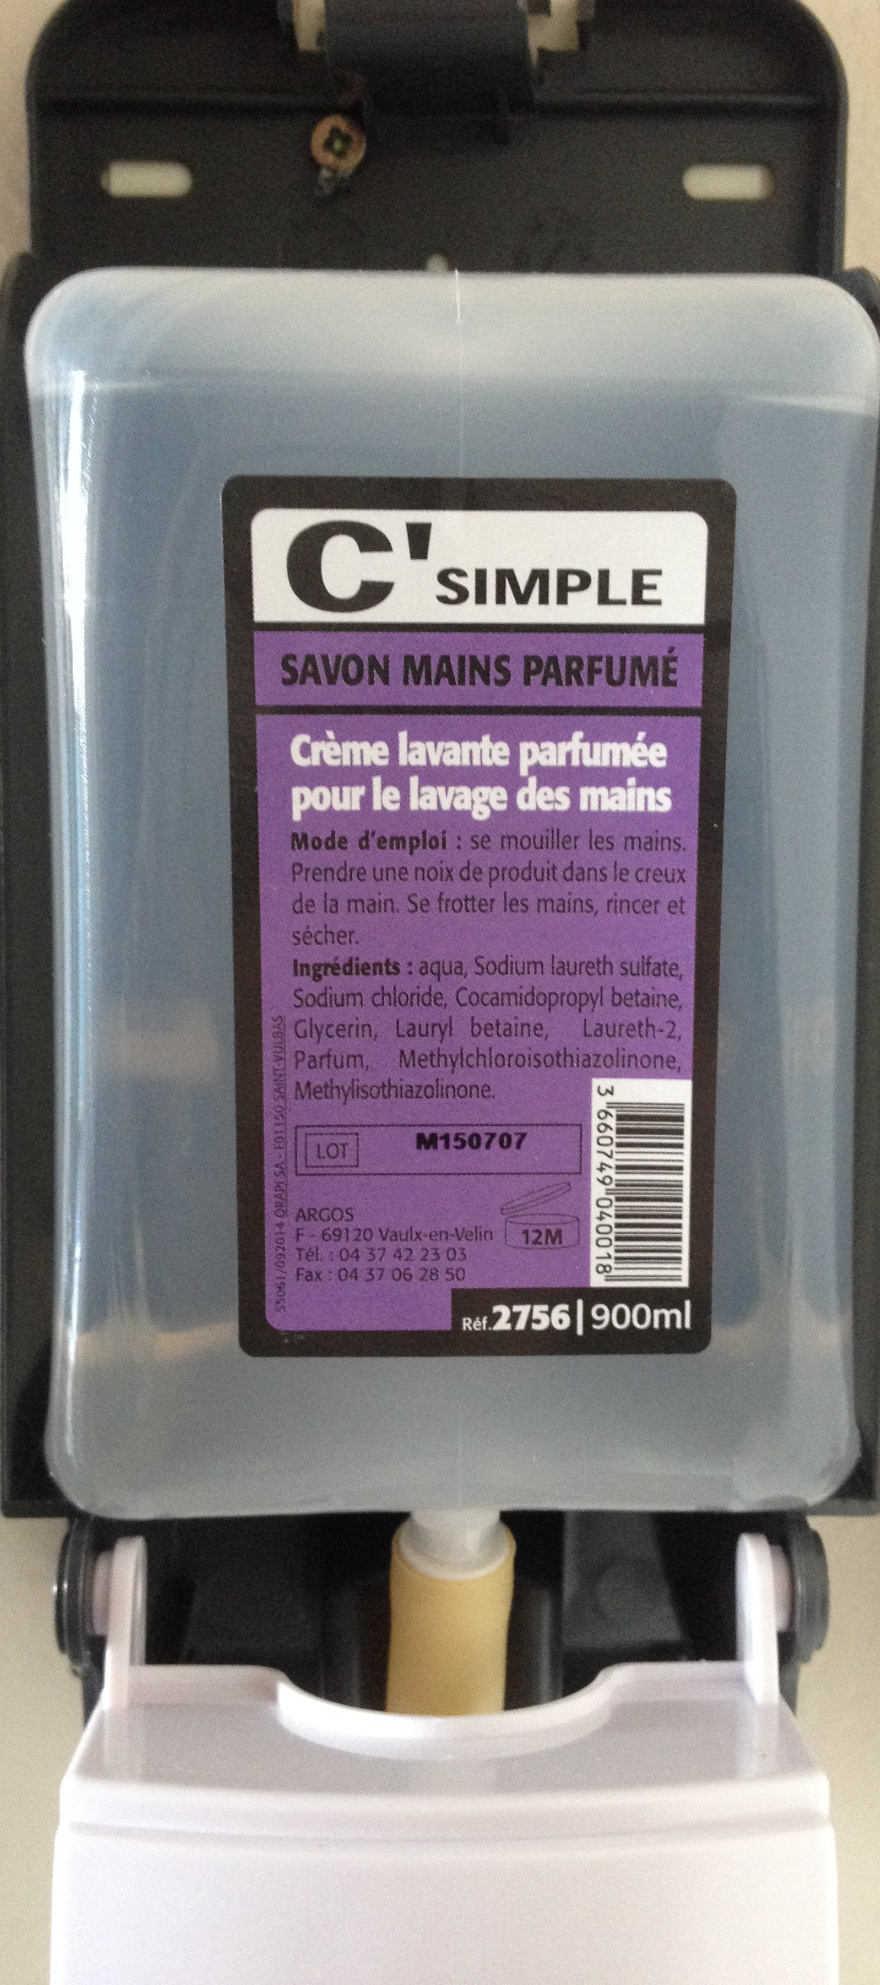 C'simple - Product - fr